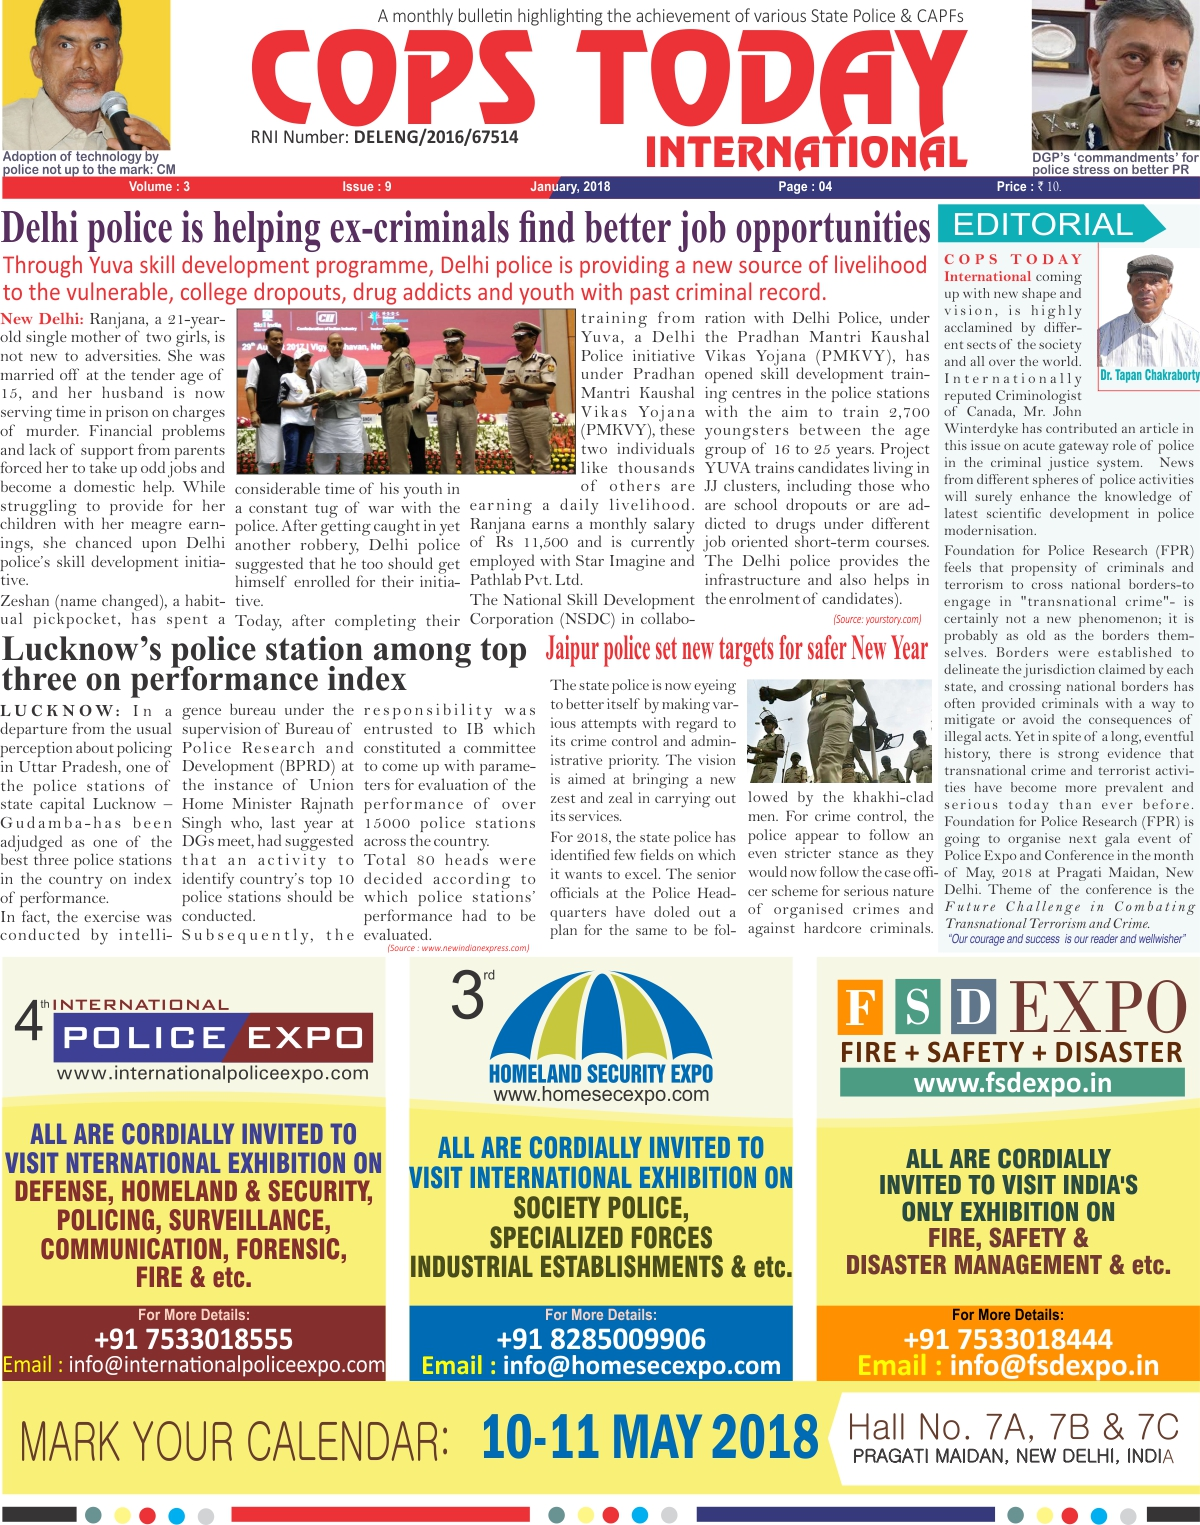 Cops Today News Paper of January 2018